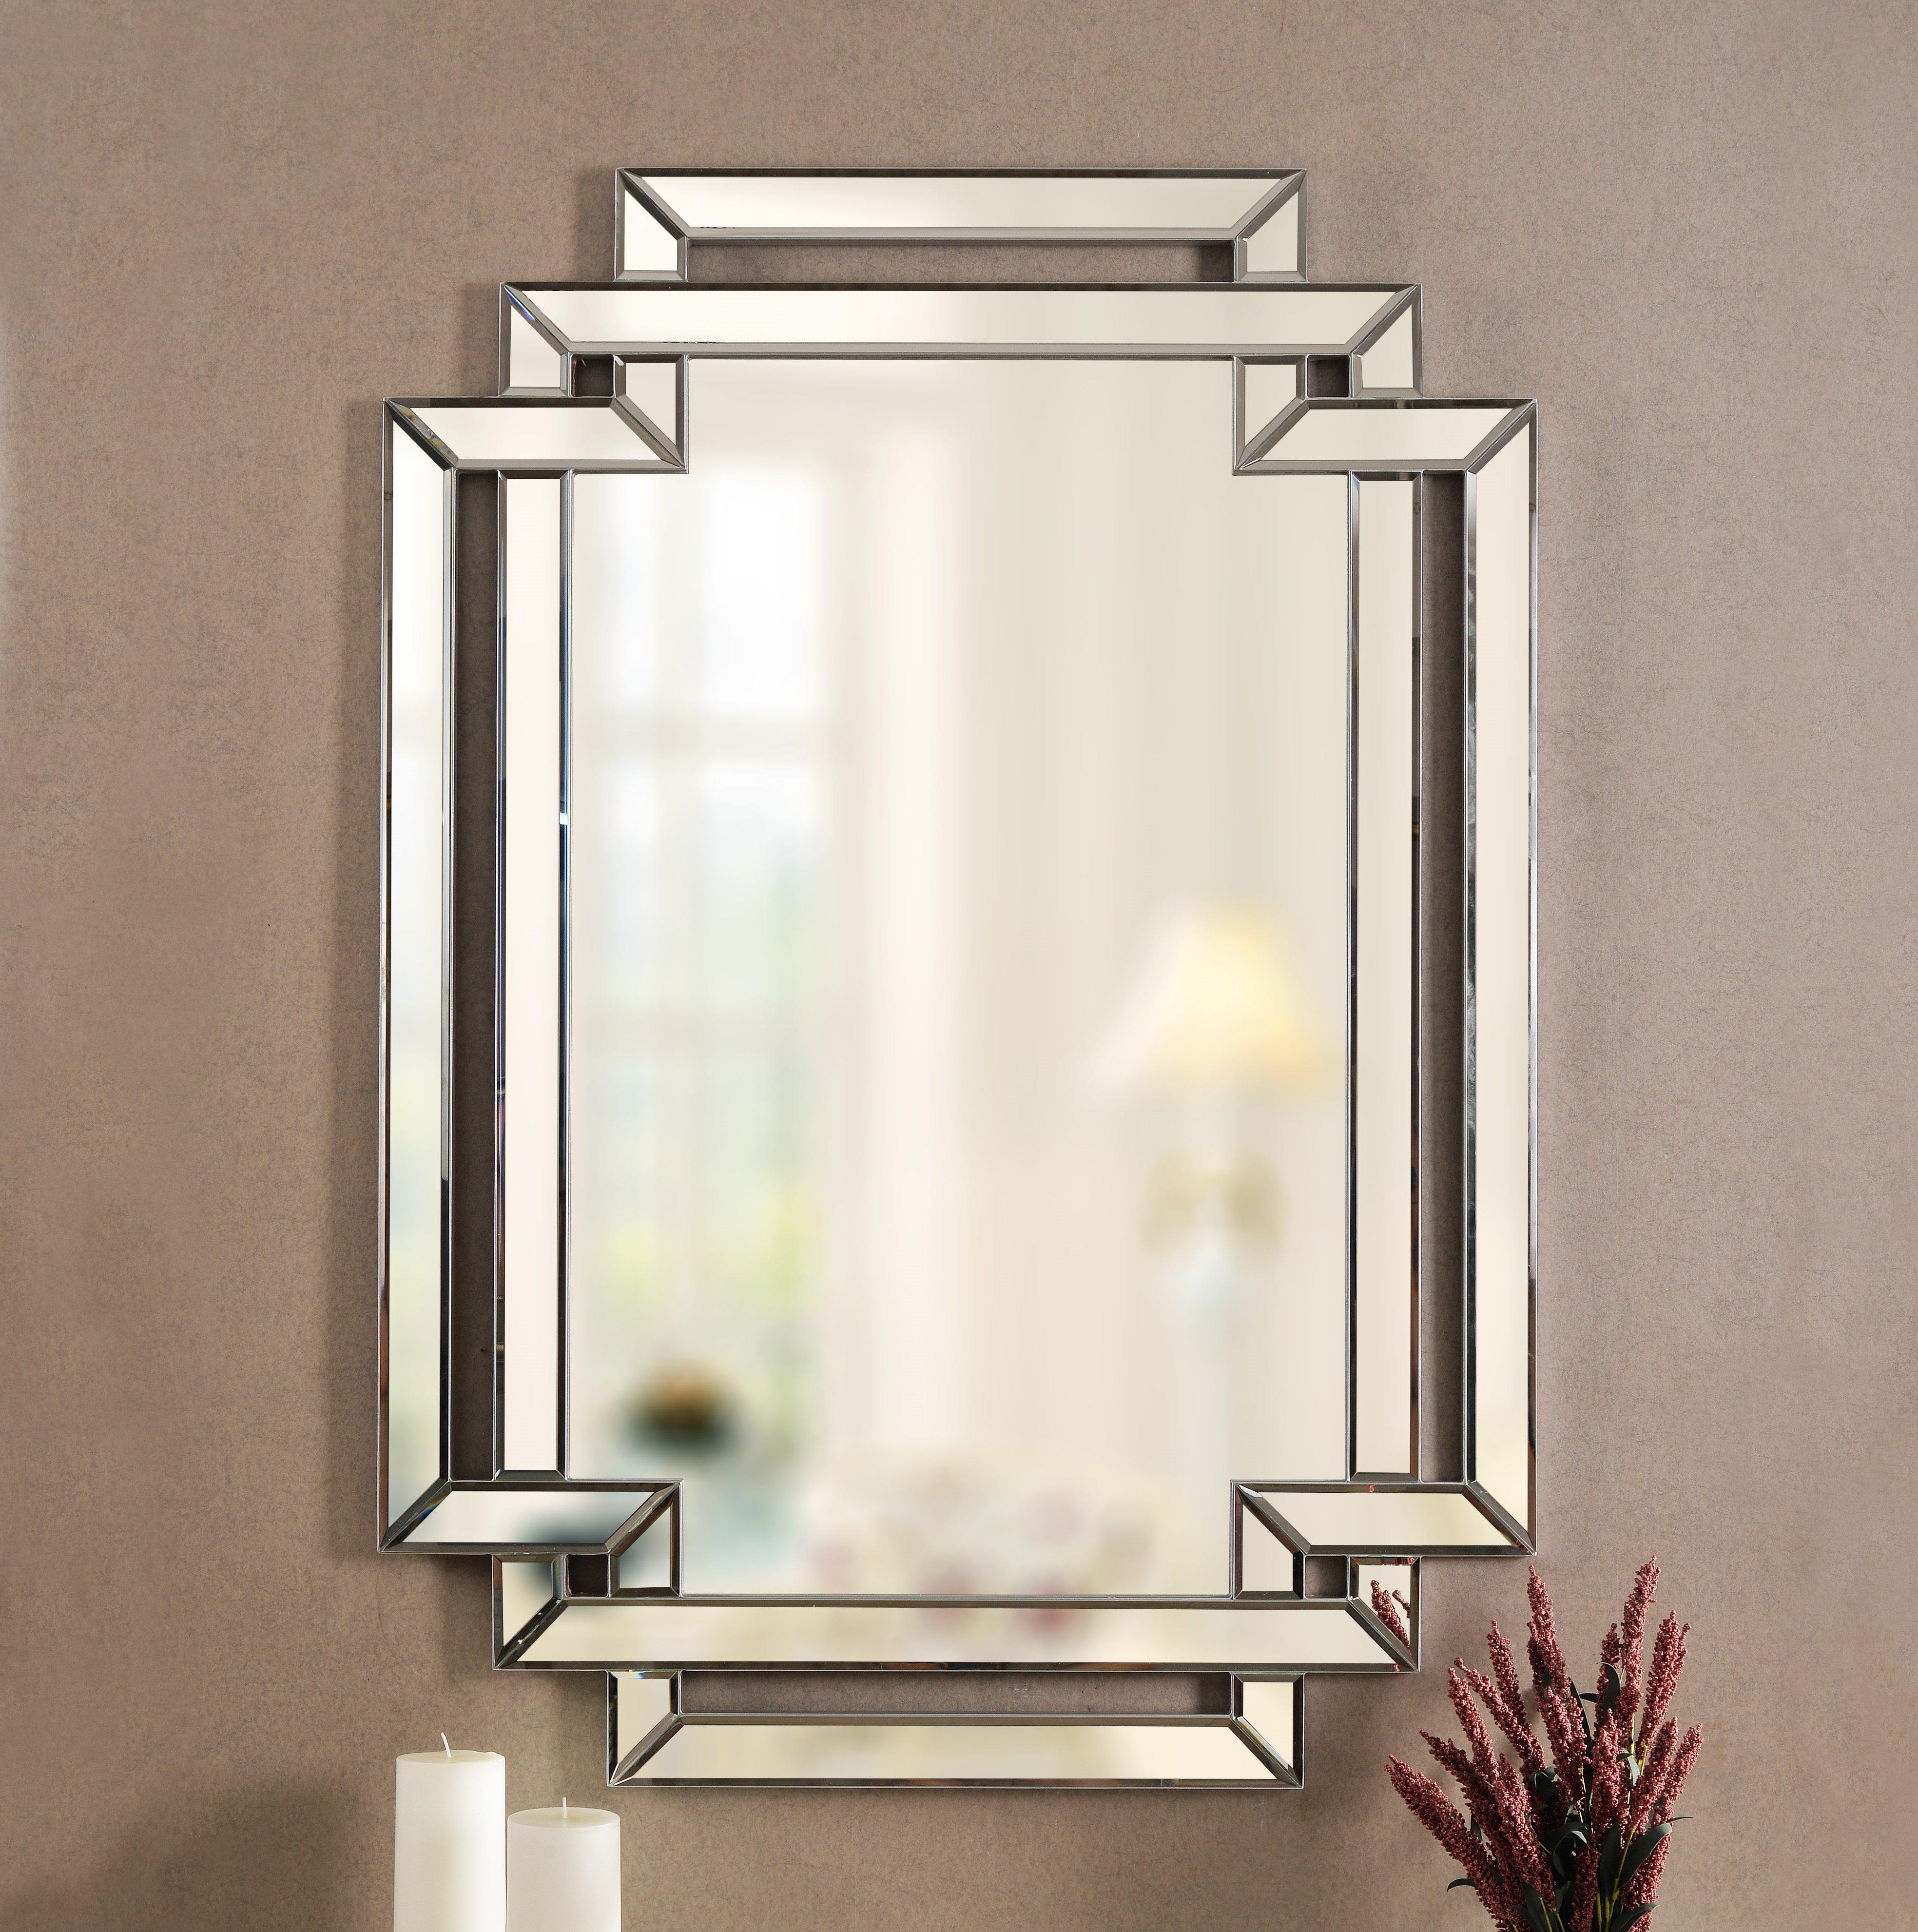 Seren Traditional Beveled Accent Mirror Regarding Willacoochee Traditional Beveled Accent Mirrors (View 5 of 20)